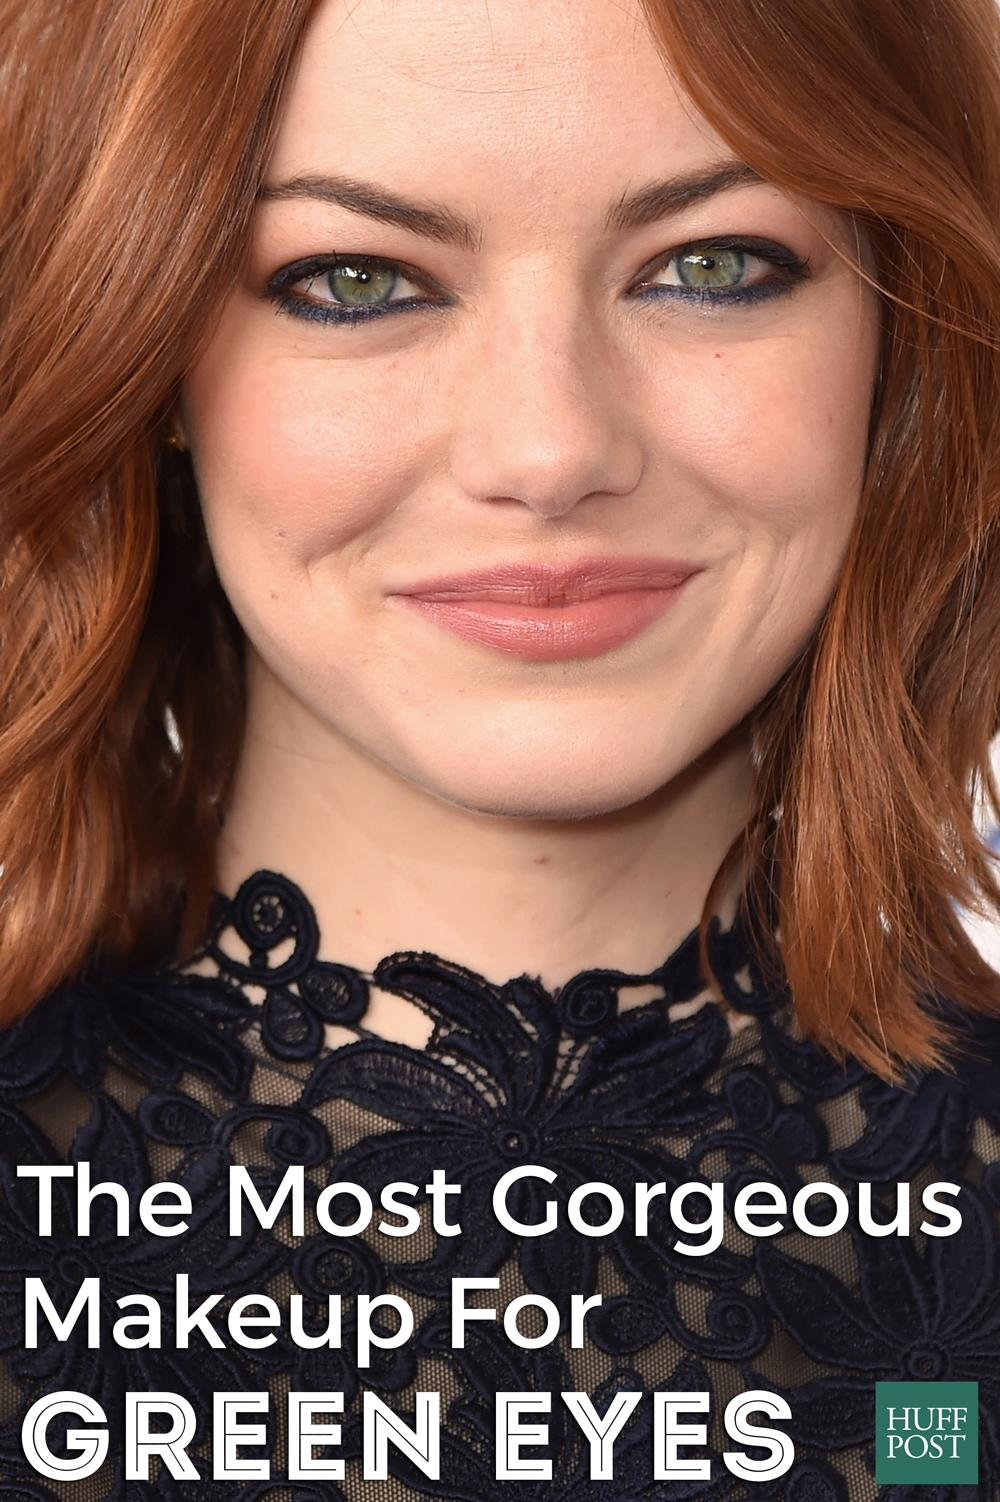 The Most Gorgeous Makeup For Green Eyes | Huffpost Life inside Best Eyeshadow For Green Eyes Brown Hair